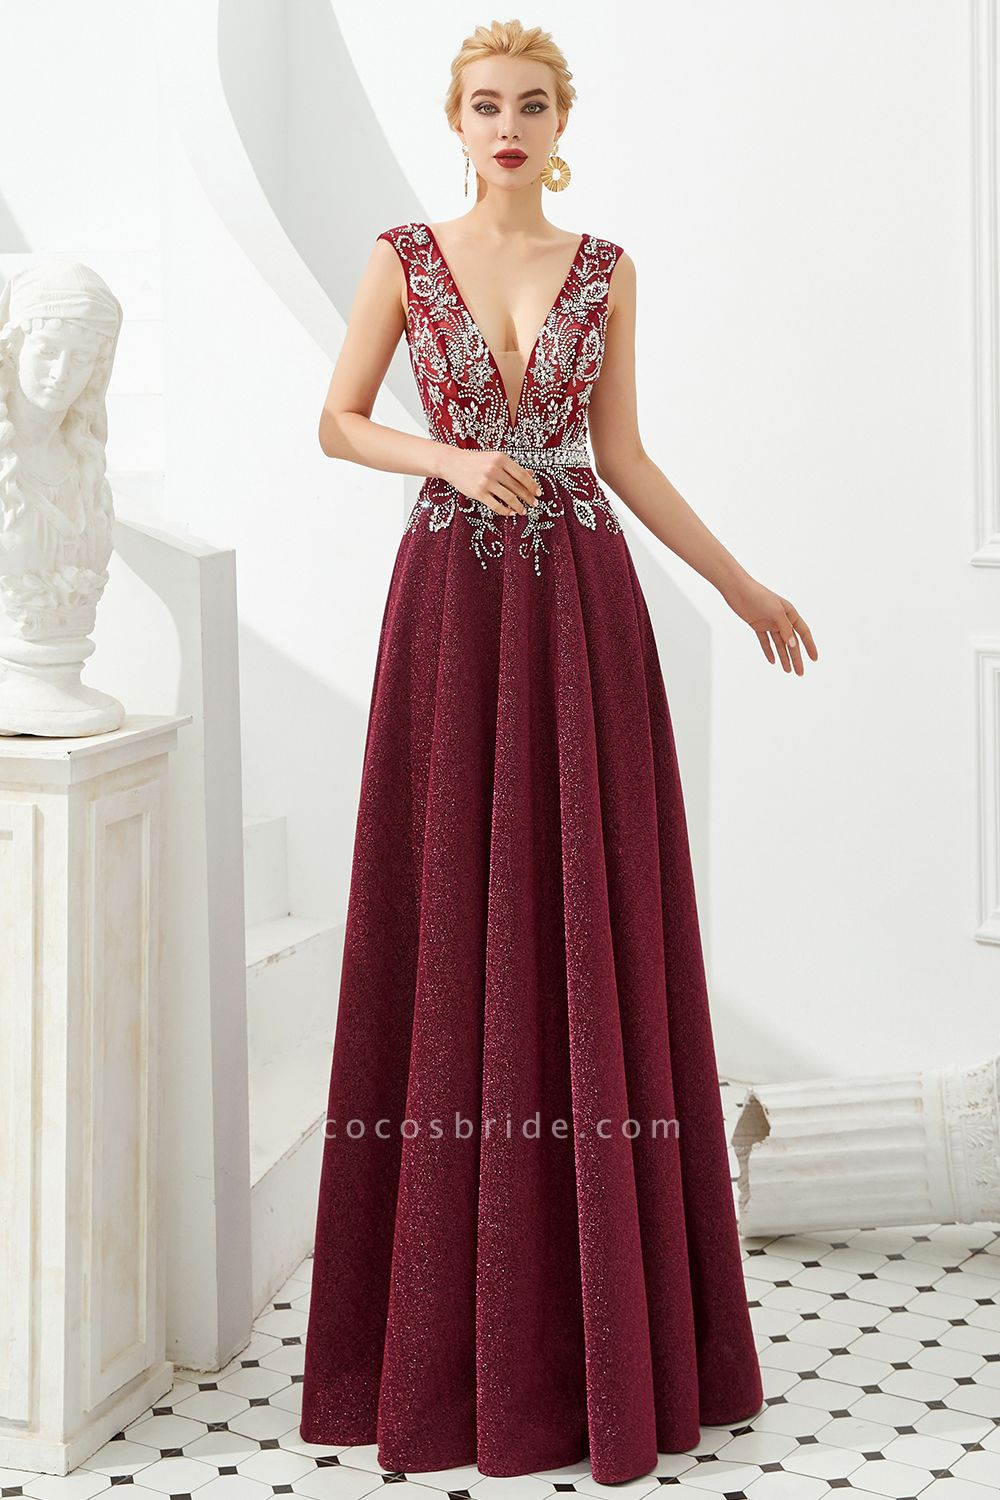 Marvelous V-neck Sequined A-line Prom Dress